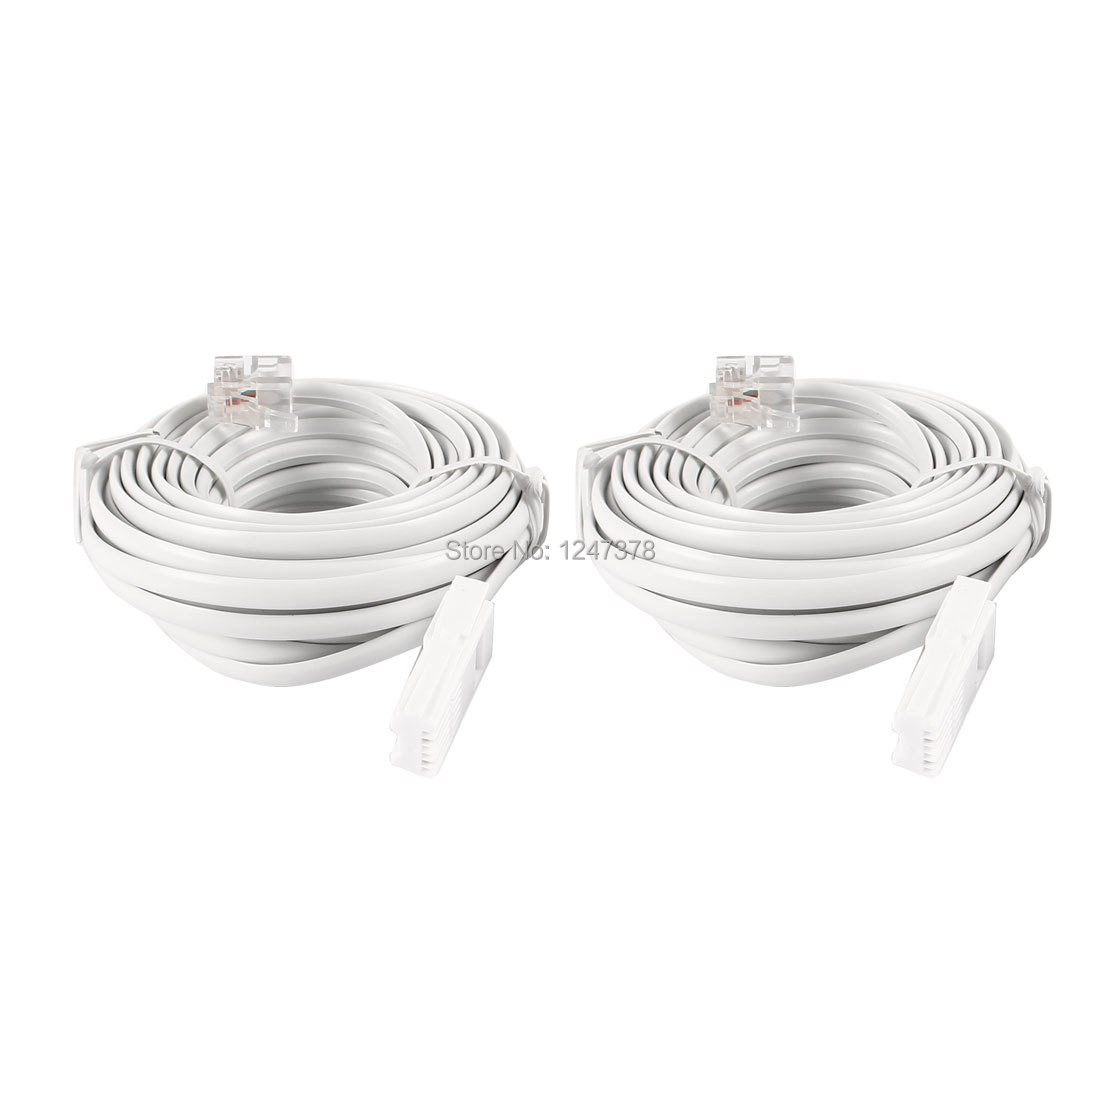 2 Pcs/lot 20ft RJ11 to UK BT 6P2C Telephone Phone Extension Cable Connector(China (Mainland))